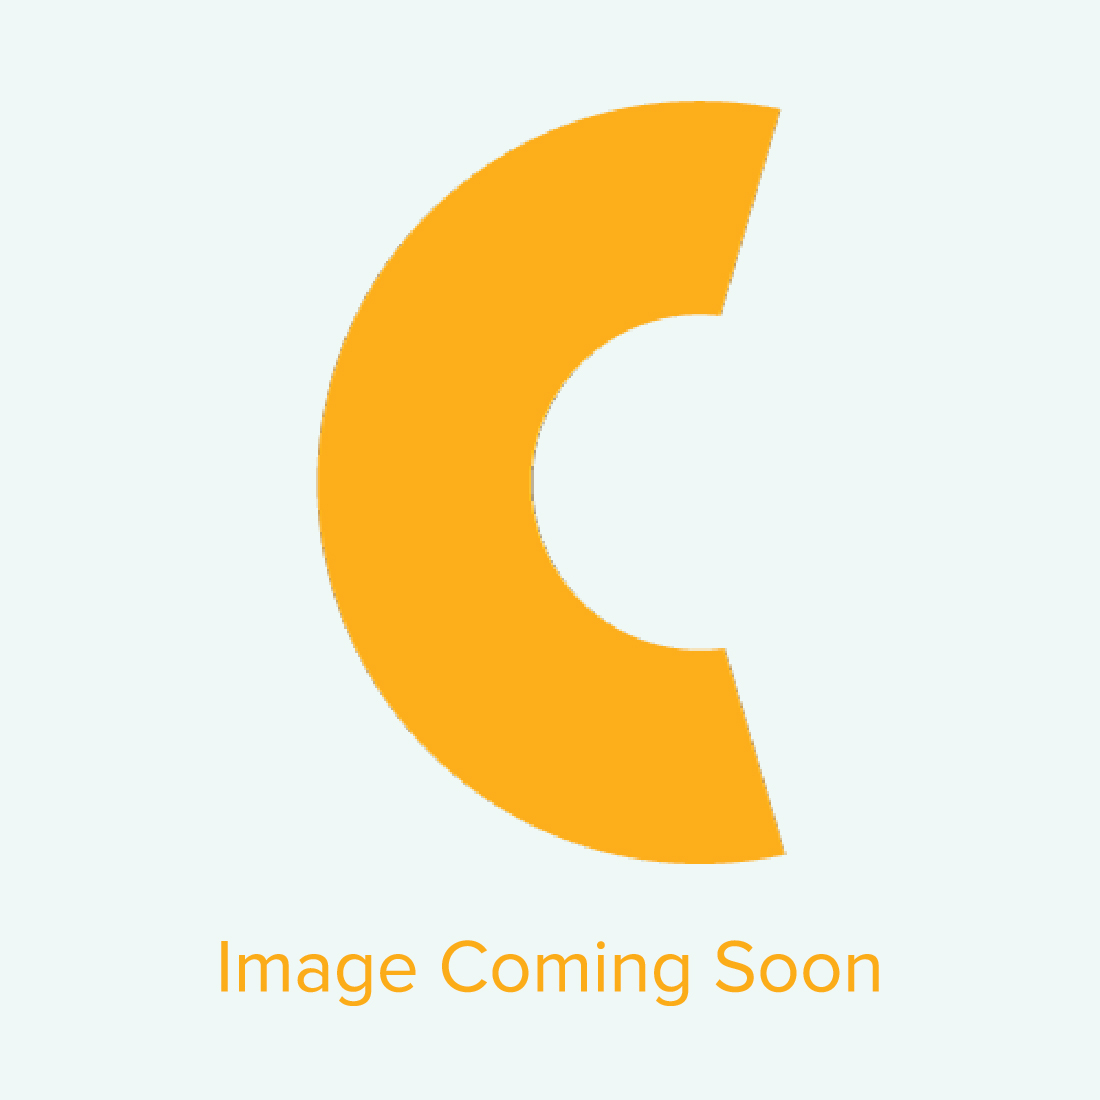 DigiTrans Dark Laser Heat Transfer Paper